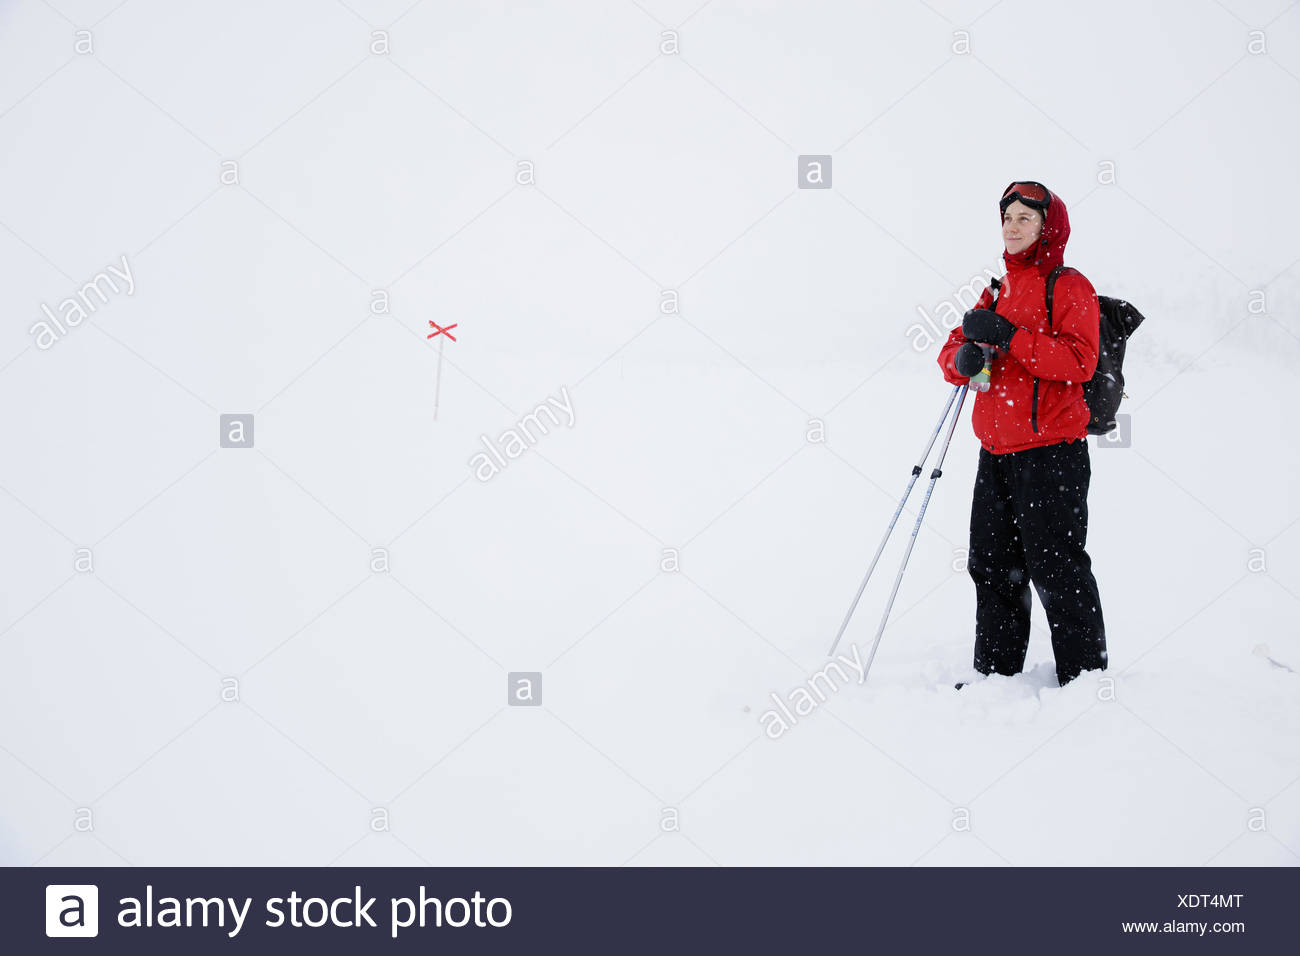 Woman wearing ski suit in winter landscape, Sweden, Lapland - Stock Image